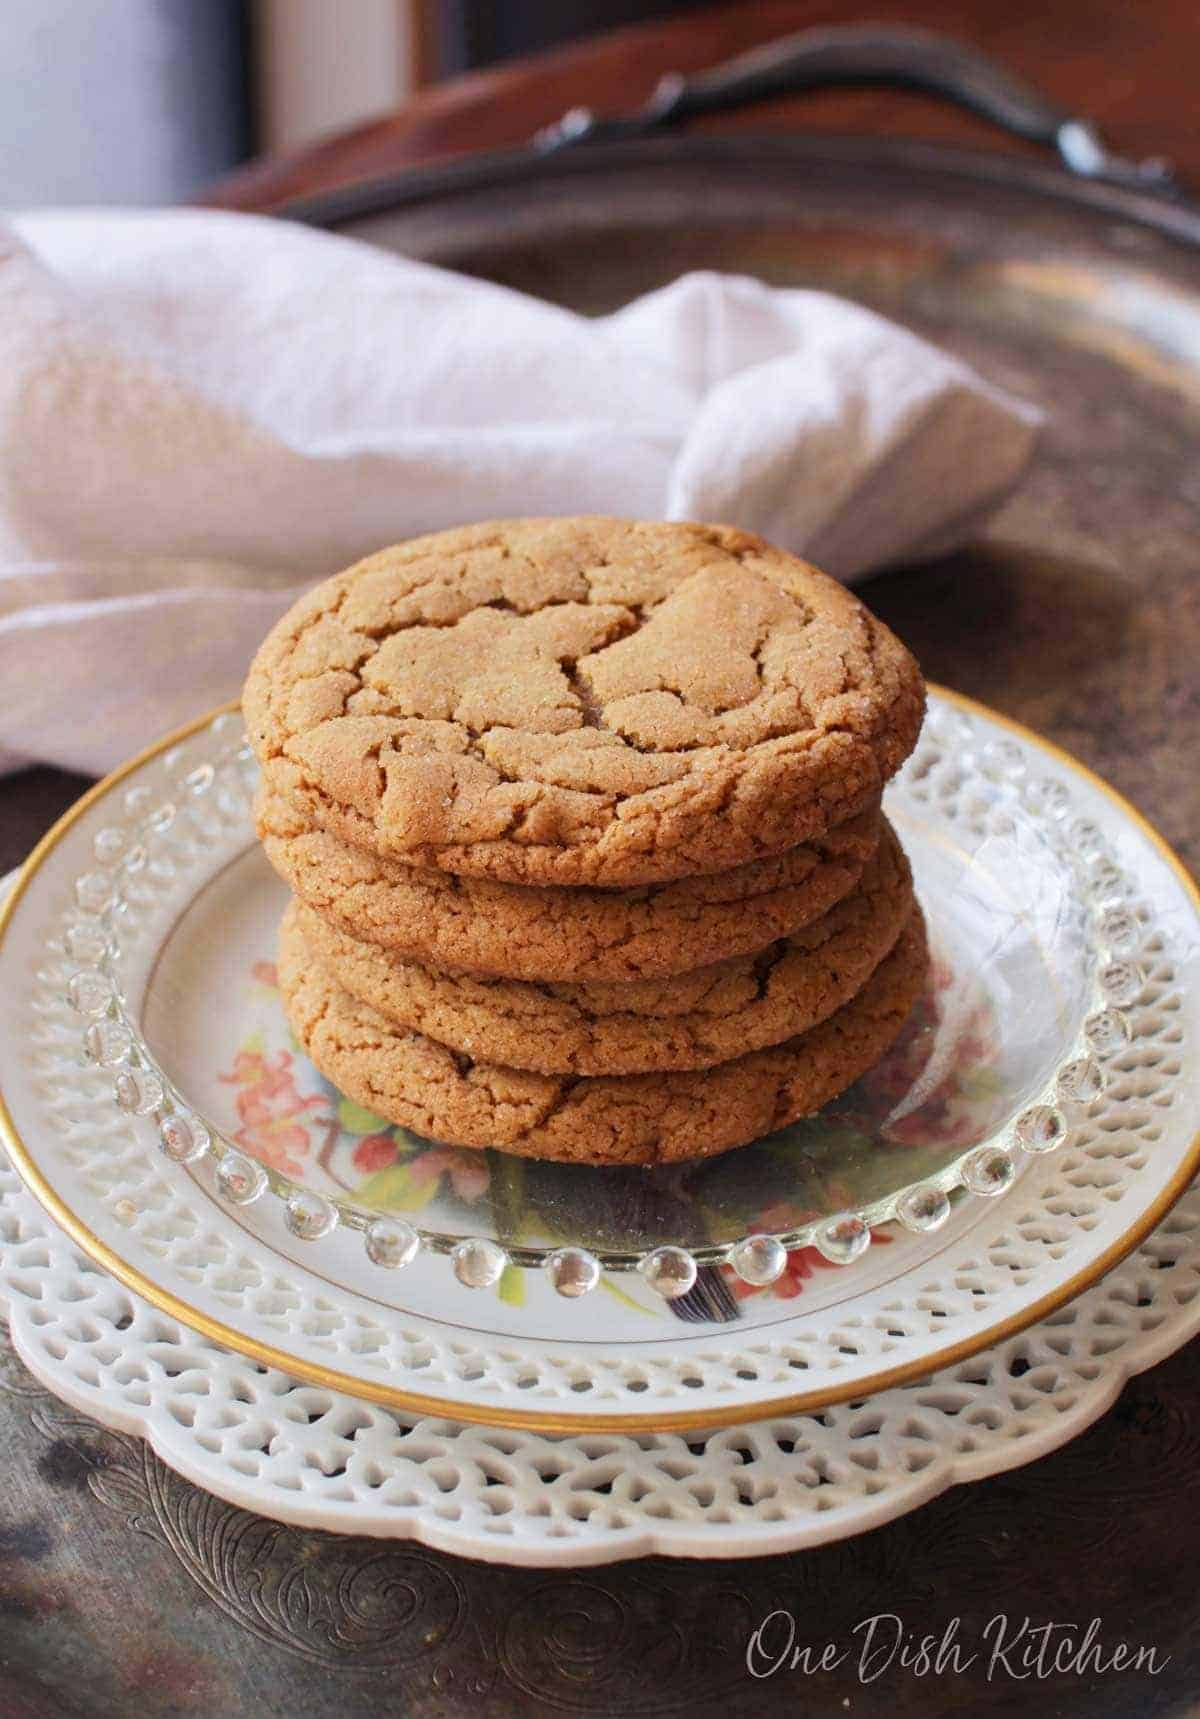 A stack of four soft ginger cookies plated on a metal tray